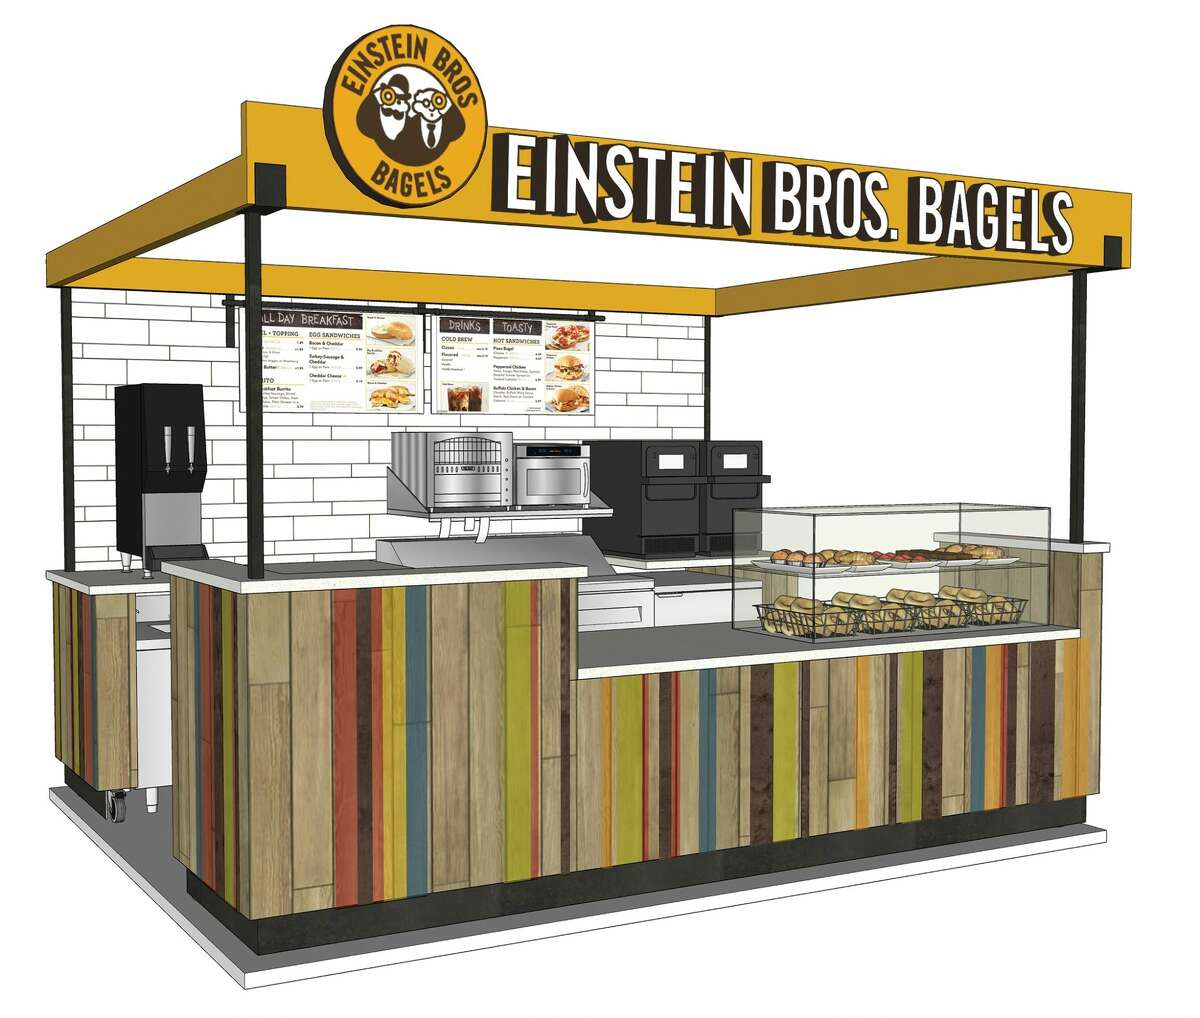 Einstein Bros. Bagels will open locations inside convenience stores for the first time. The company inked a five-store development deal with King Fuels in Houston.